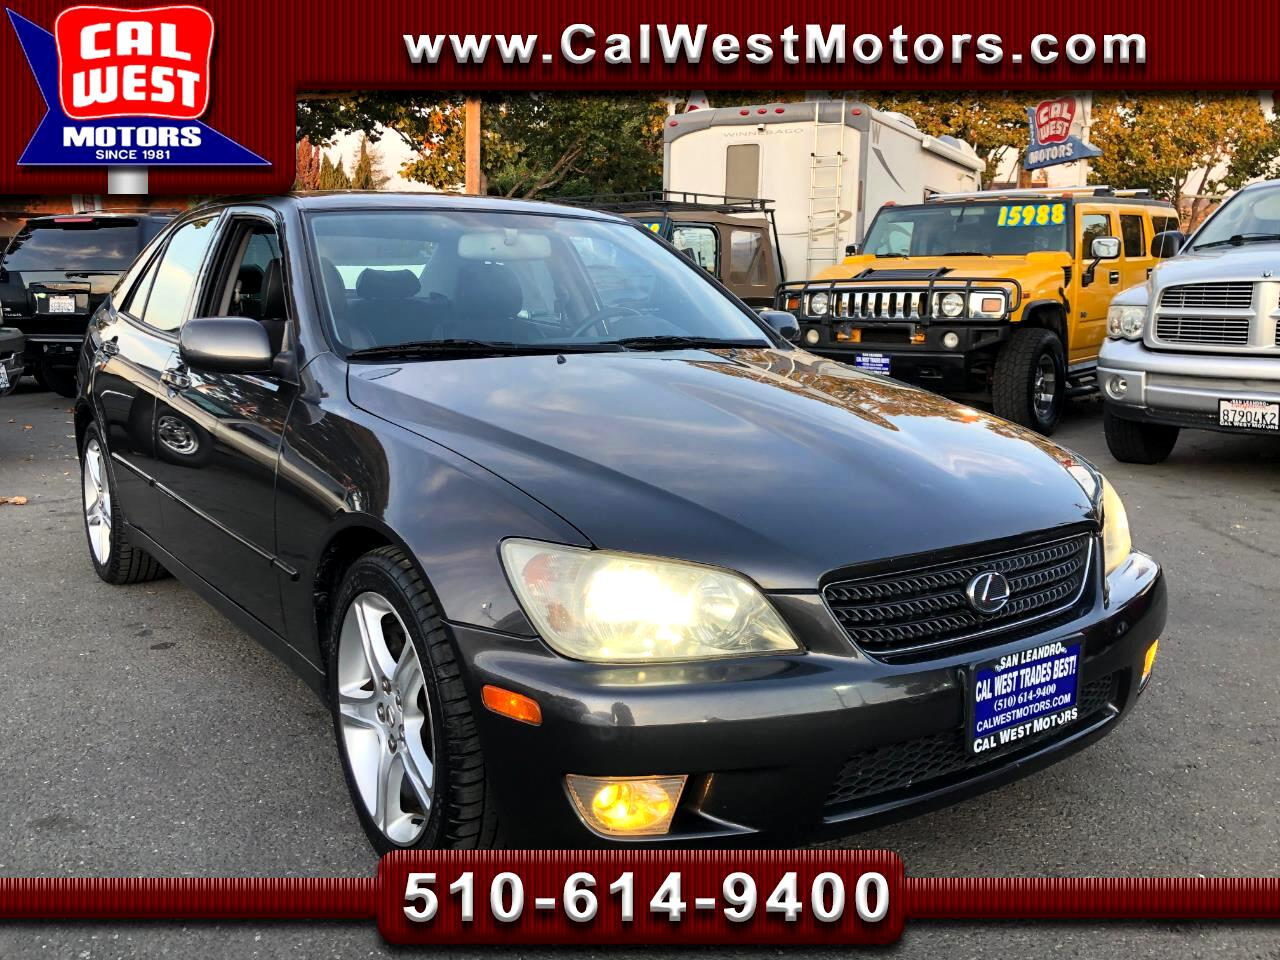 2002 Lexus IS 300 E-Shift Sedan 1Owner LowMiles GreatMtnce SuperNice